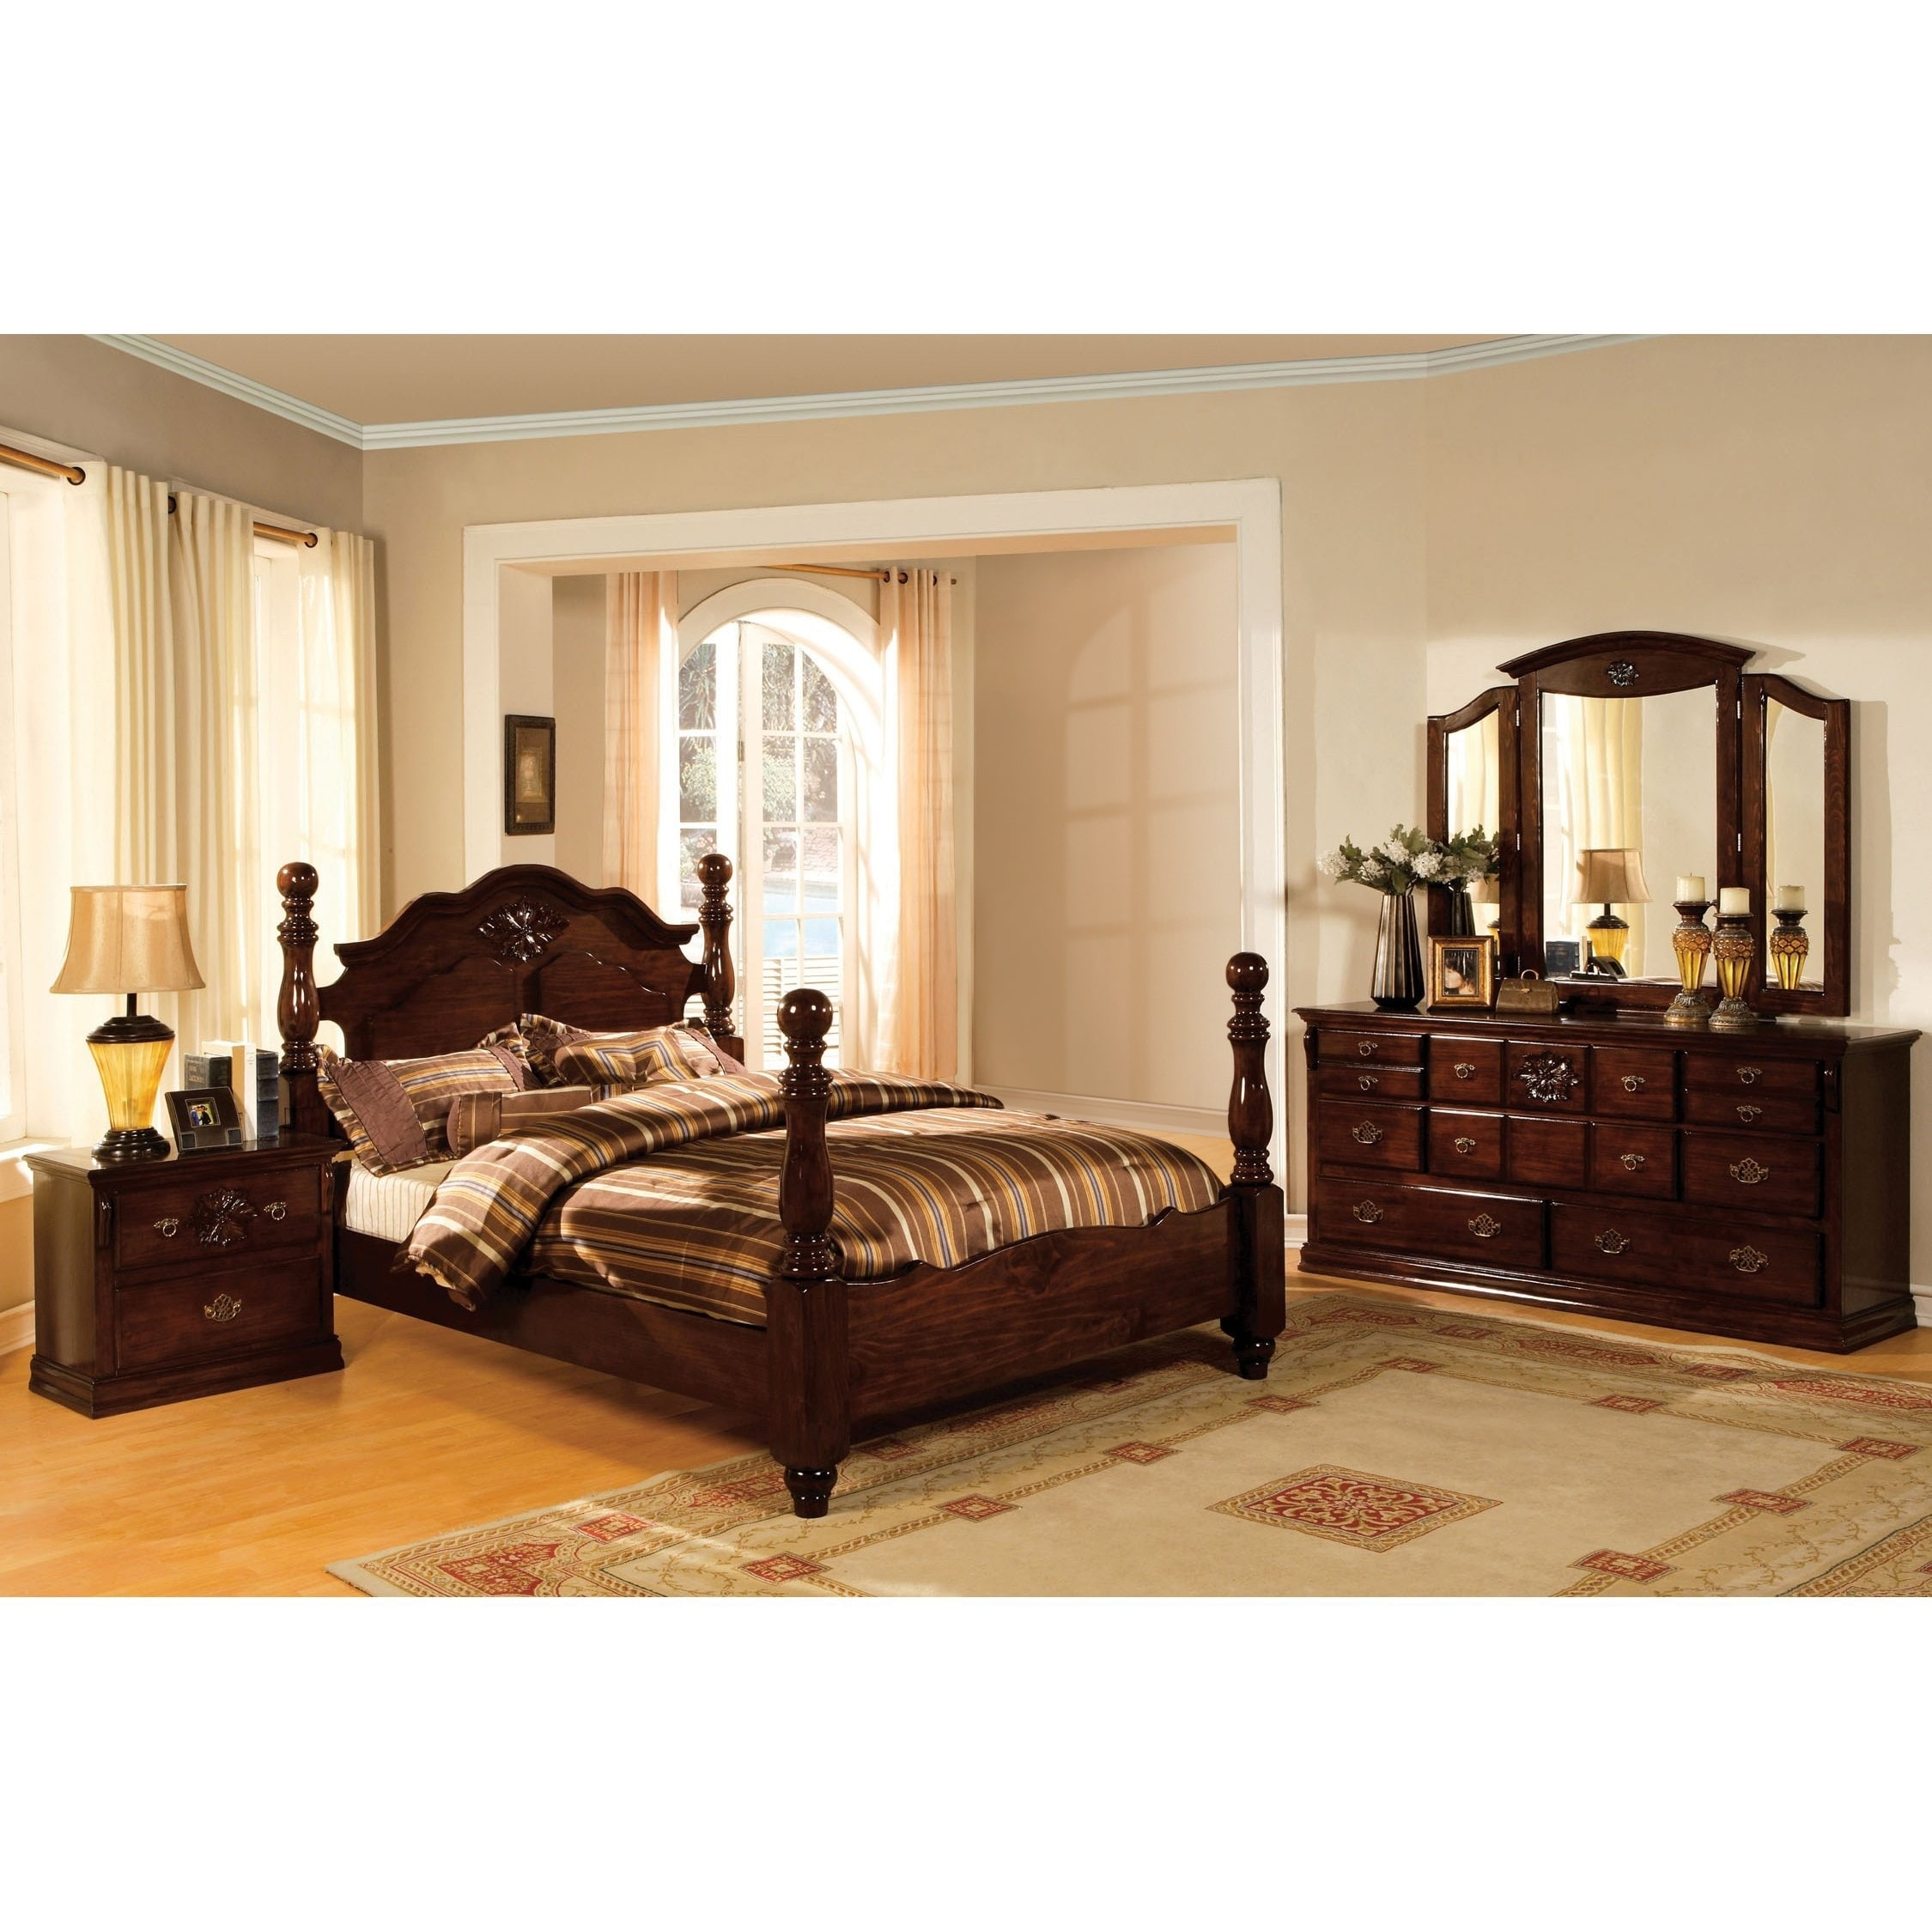 Weston Traditional Glossy Dark Pine 4-piece Poster Bedroom Set